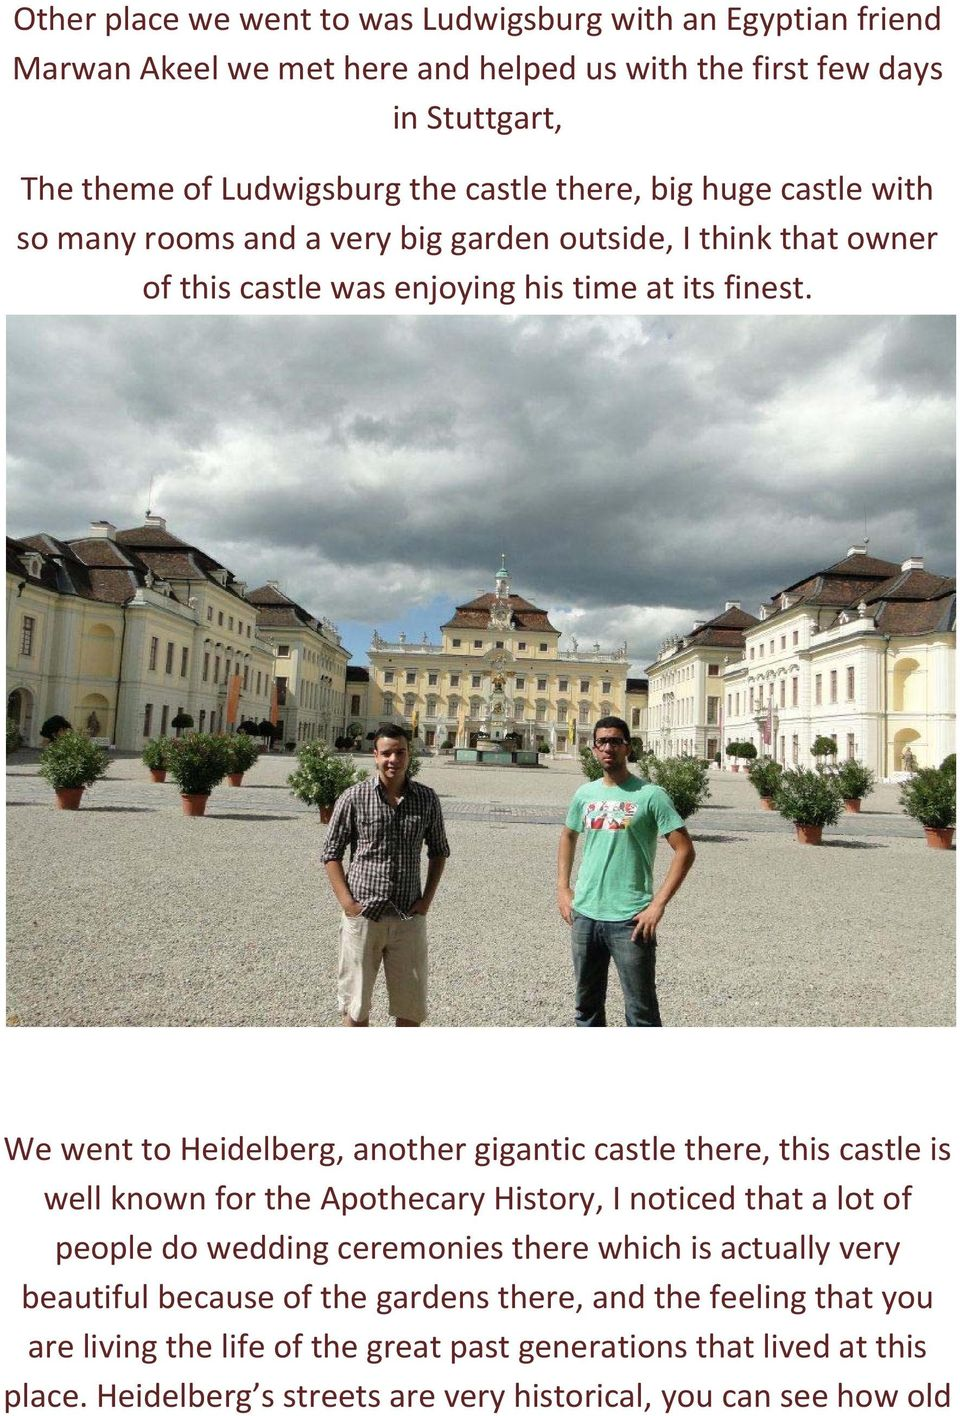 We went to Heidelberg, another gigantic castle there, this castle is well known for the Apothecary History, I noticed that a lot of people do wedding ceremonies there which is